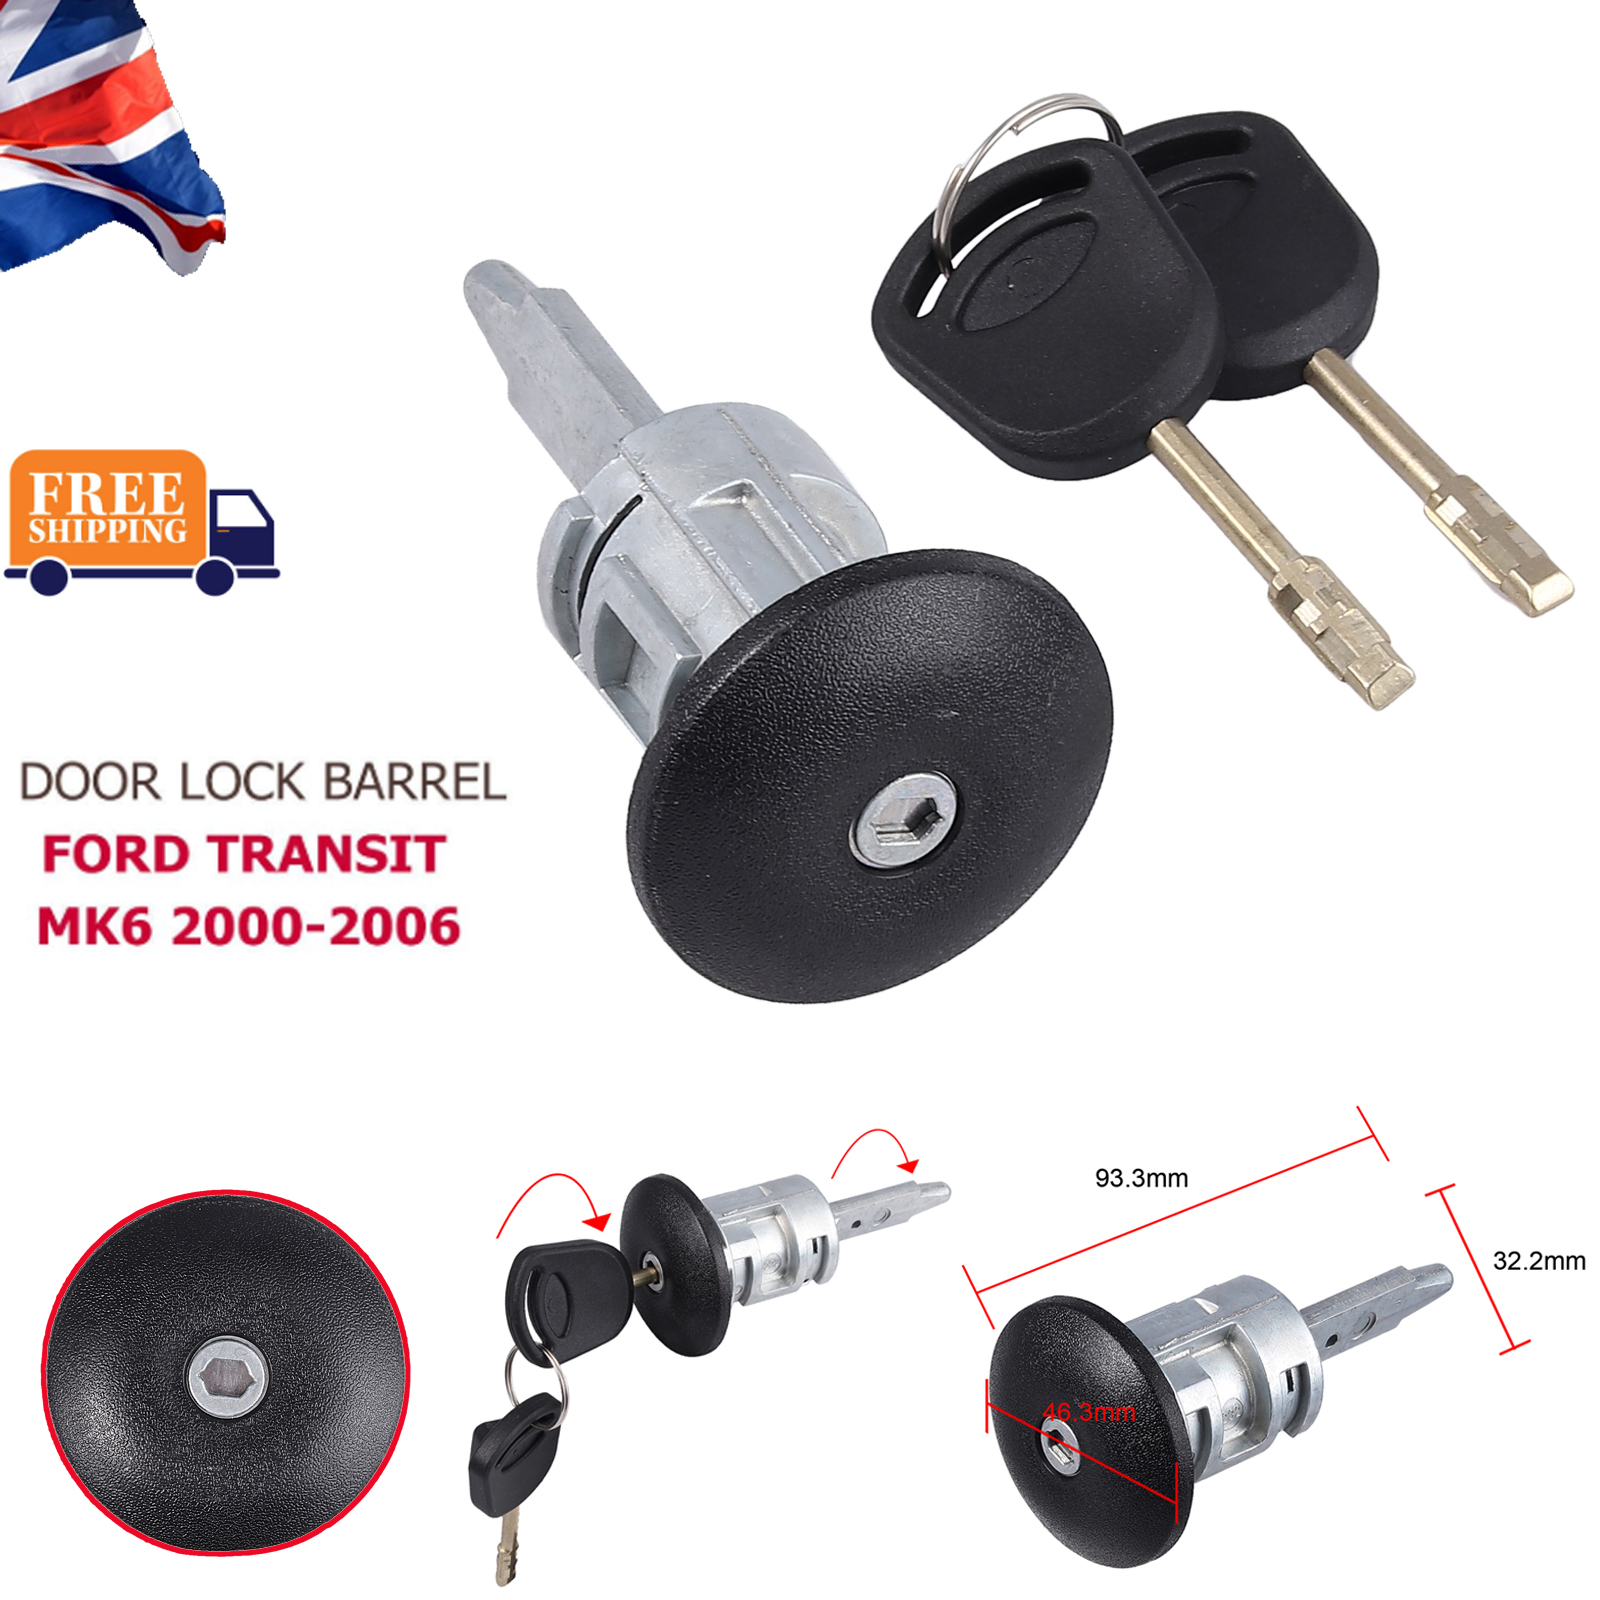 1 Front Right Drivers Side Door Lock Barrel and 2 Keys For Ford Transit MK6